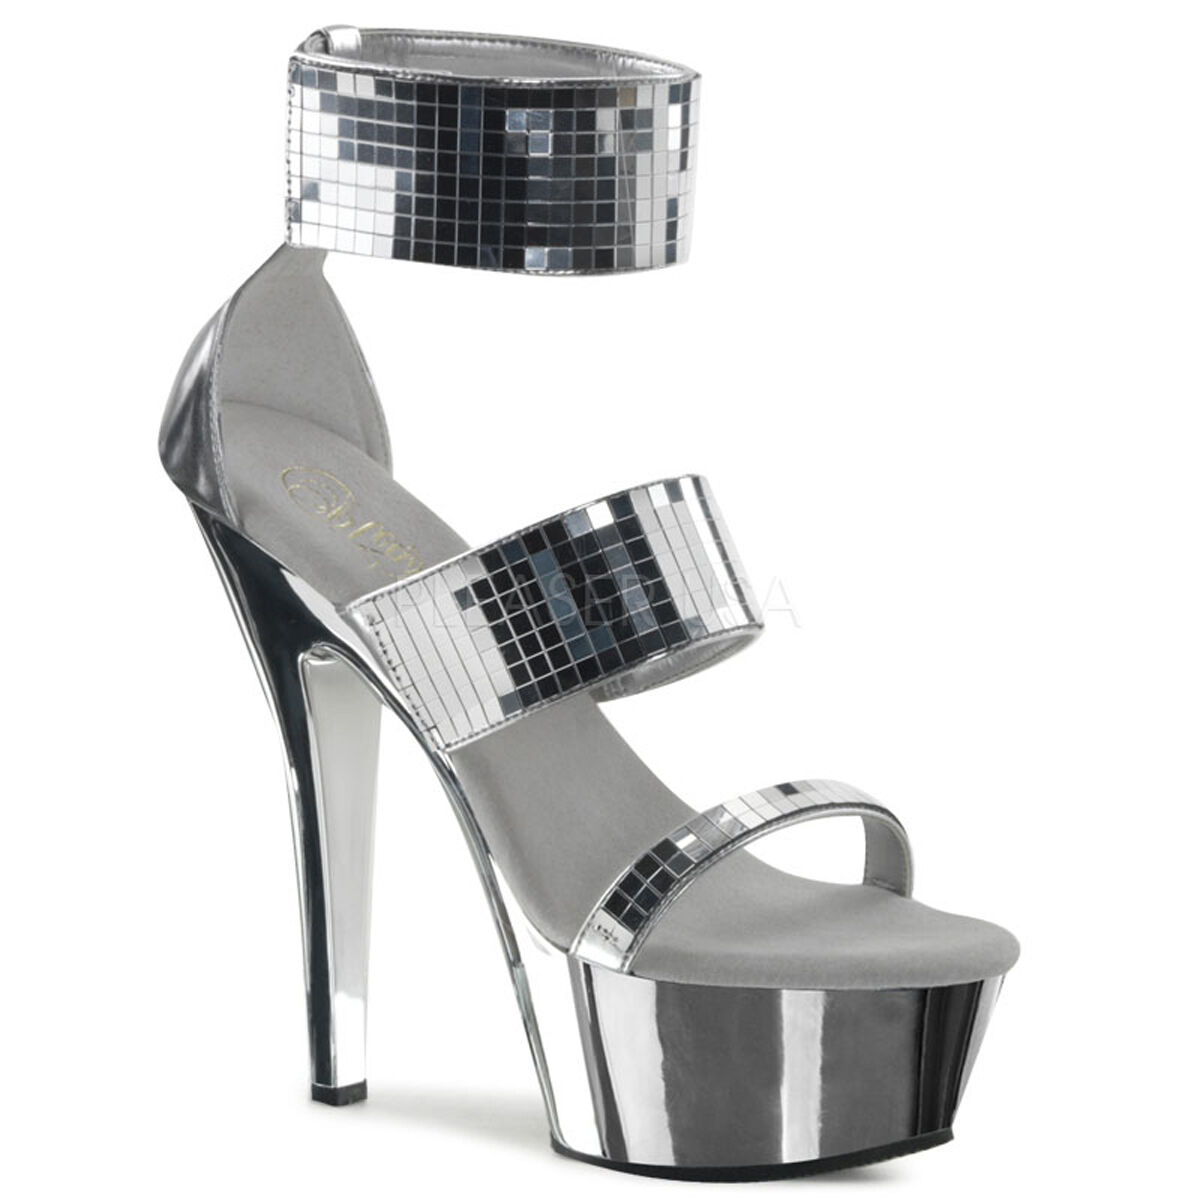 Pleaser KISS-270 272 285 292 293 297 Exotic Dancing Platform Ankle Strap Sandale